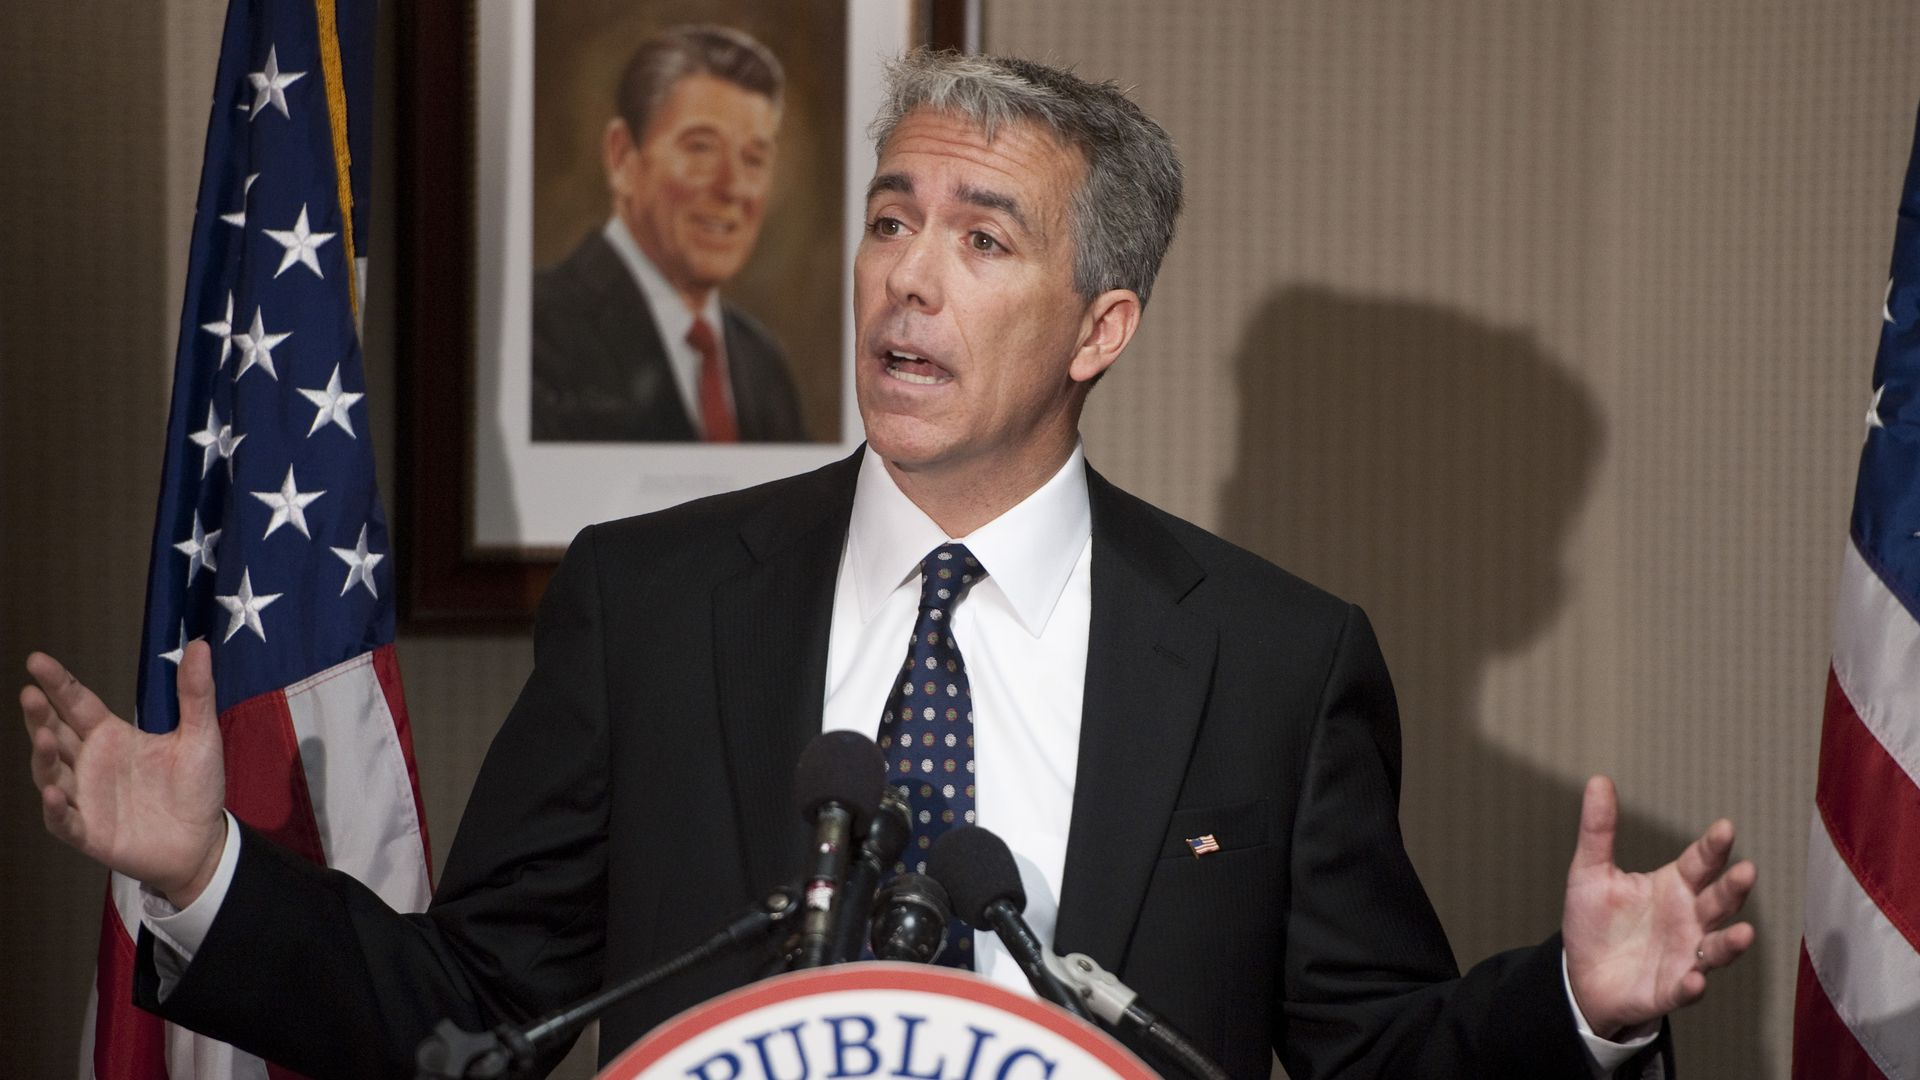 Joe Walsh, R-Ill., holds a news conference on his election to Congress at the Republican National Committee headquarters on Wednesday, Nov. 17, 2010